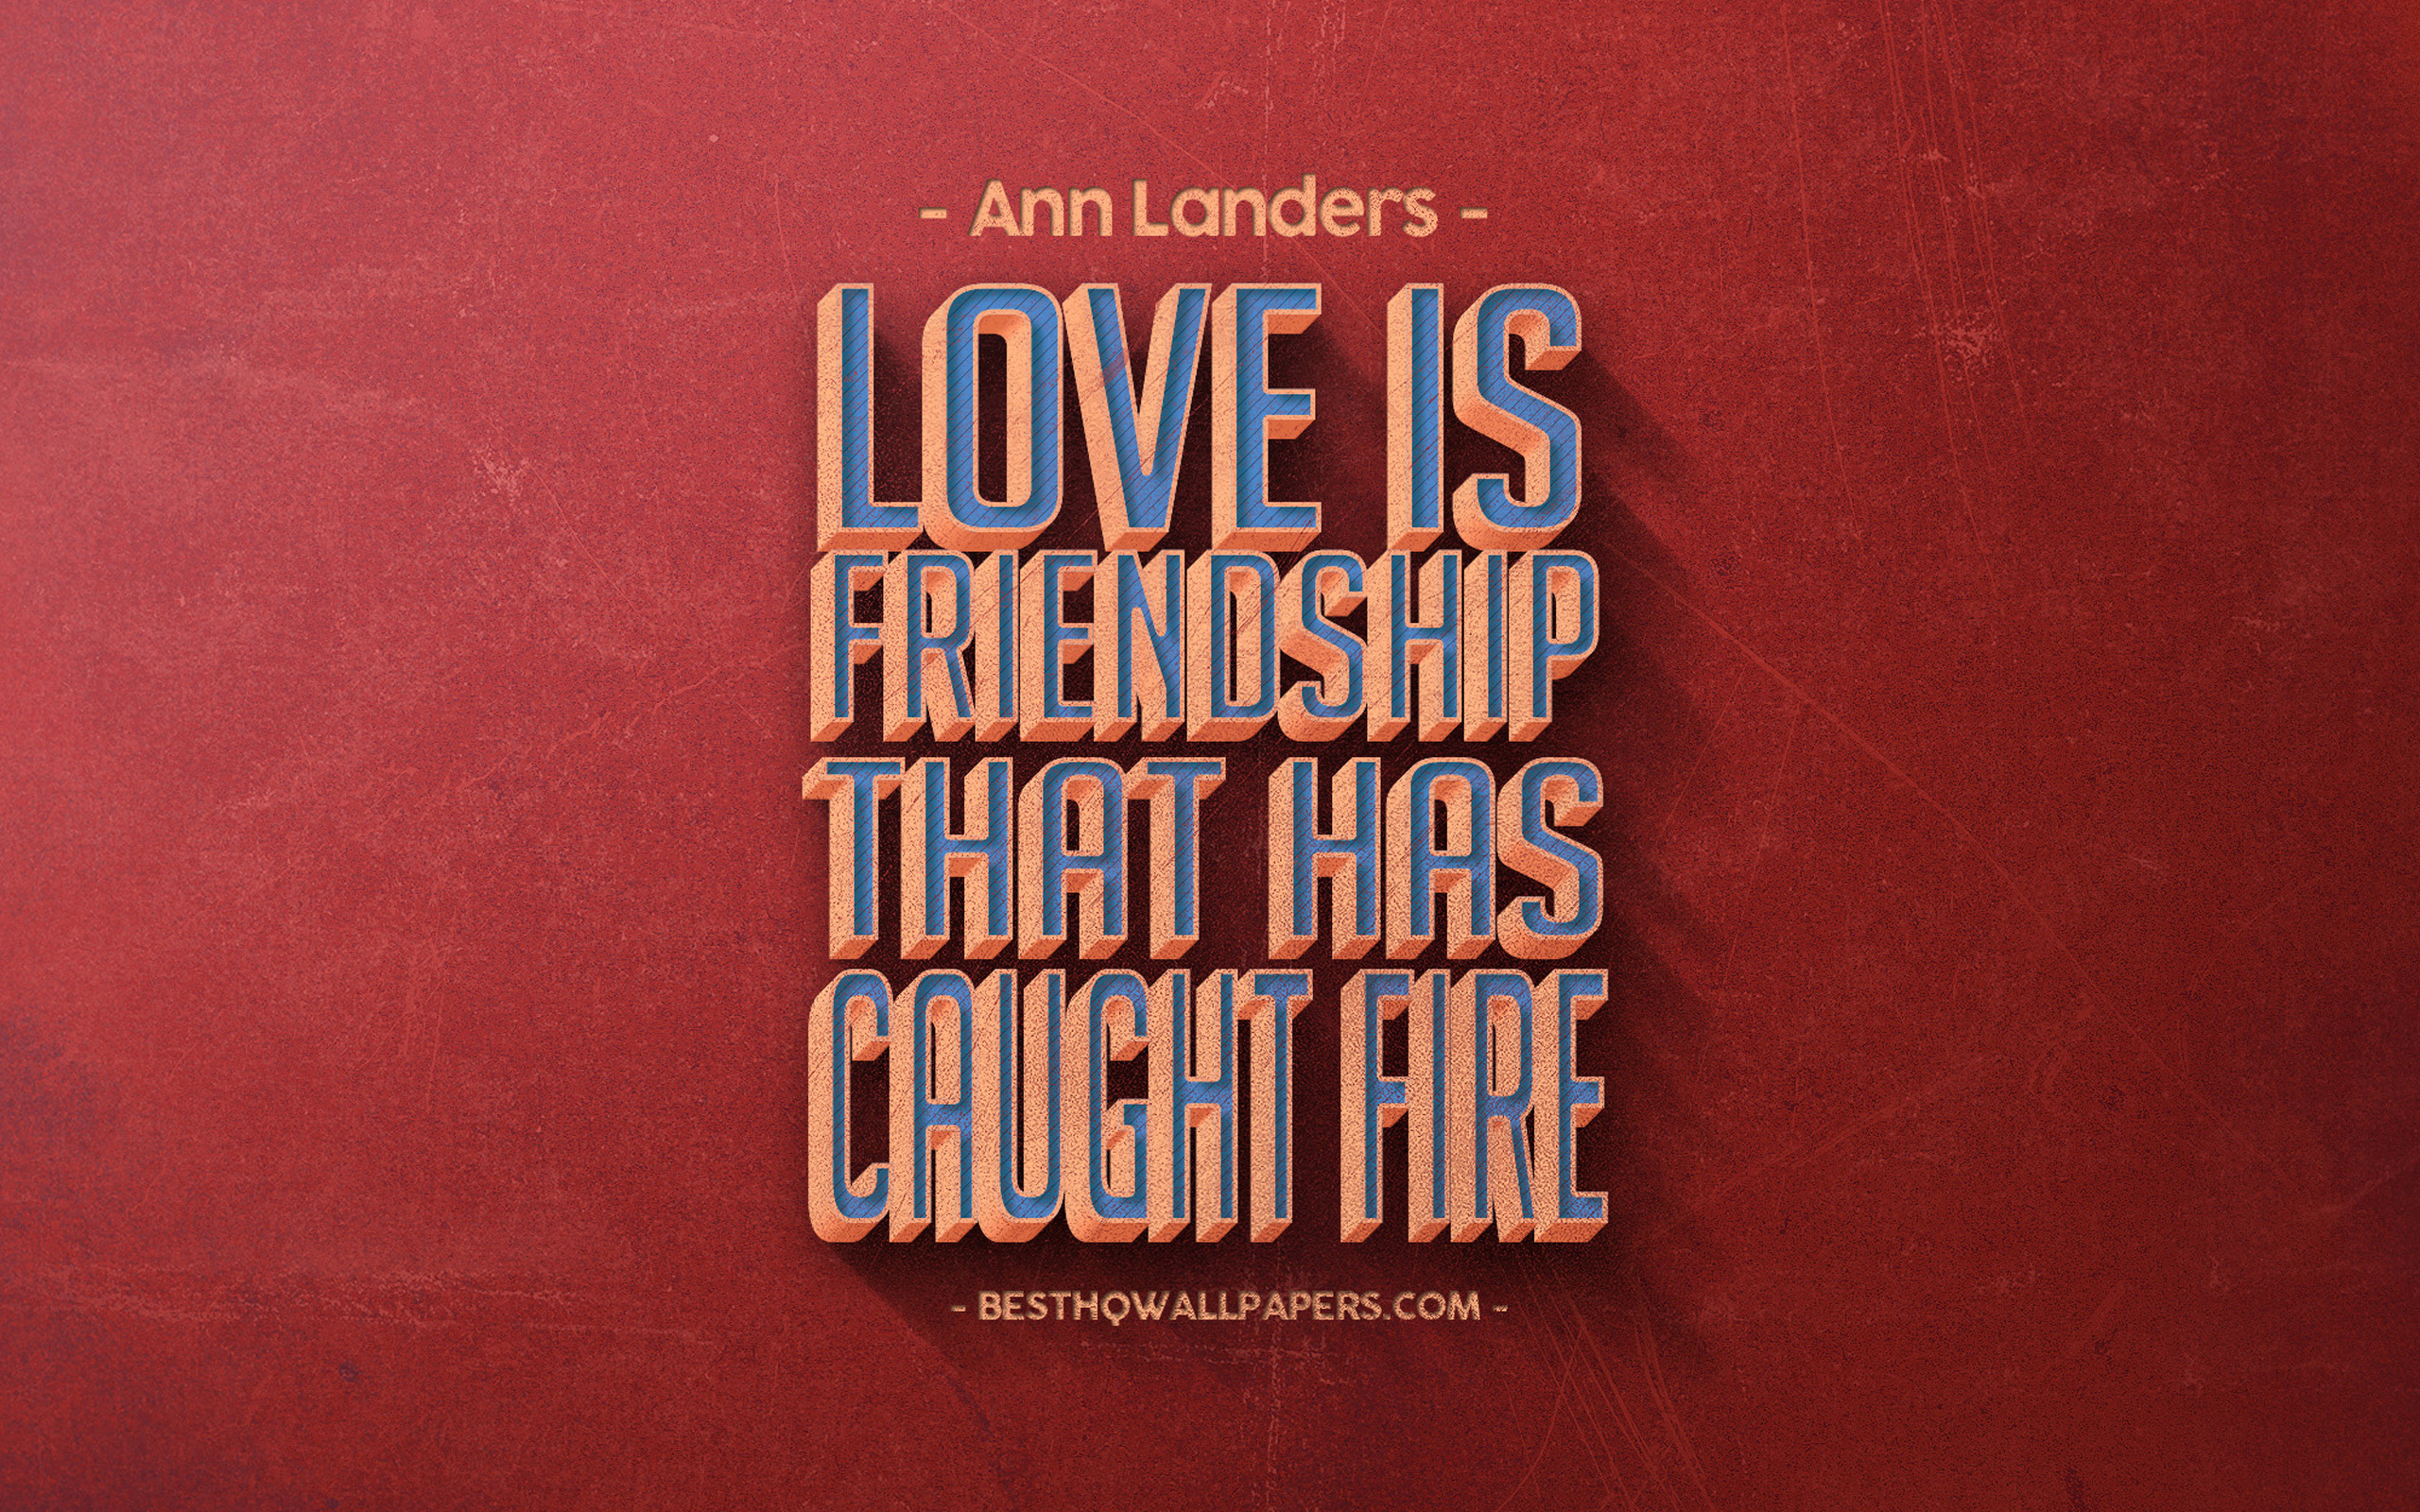 Love Is Friendship That Has Caught Fire, Ann Landers - Theodore Roosevelt Quotes Nothing Worth Having Comes - HD Wallpaper